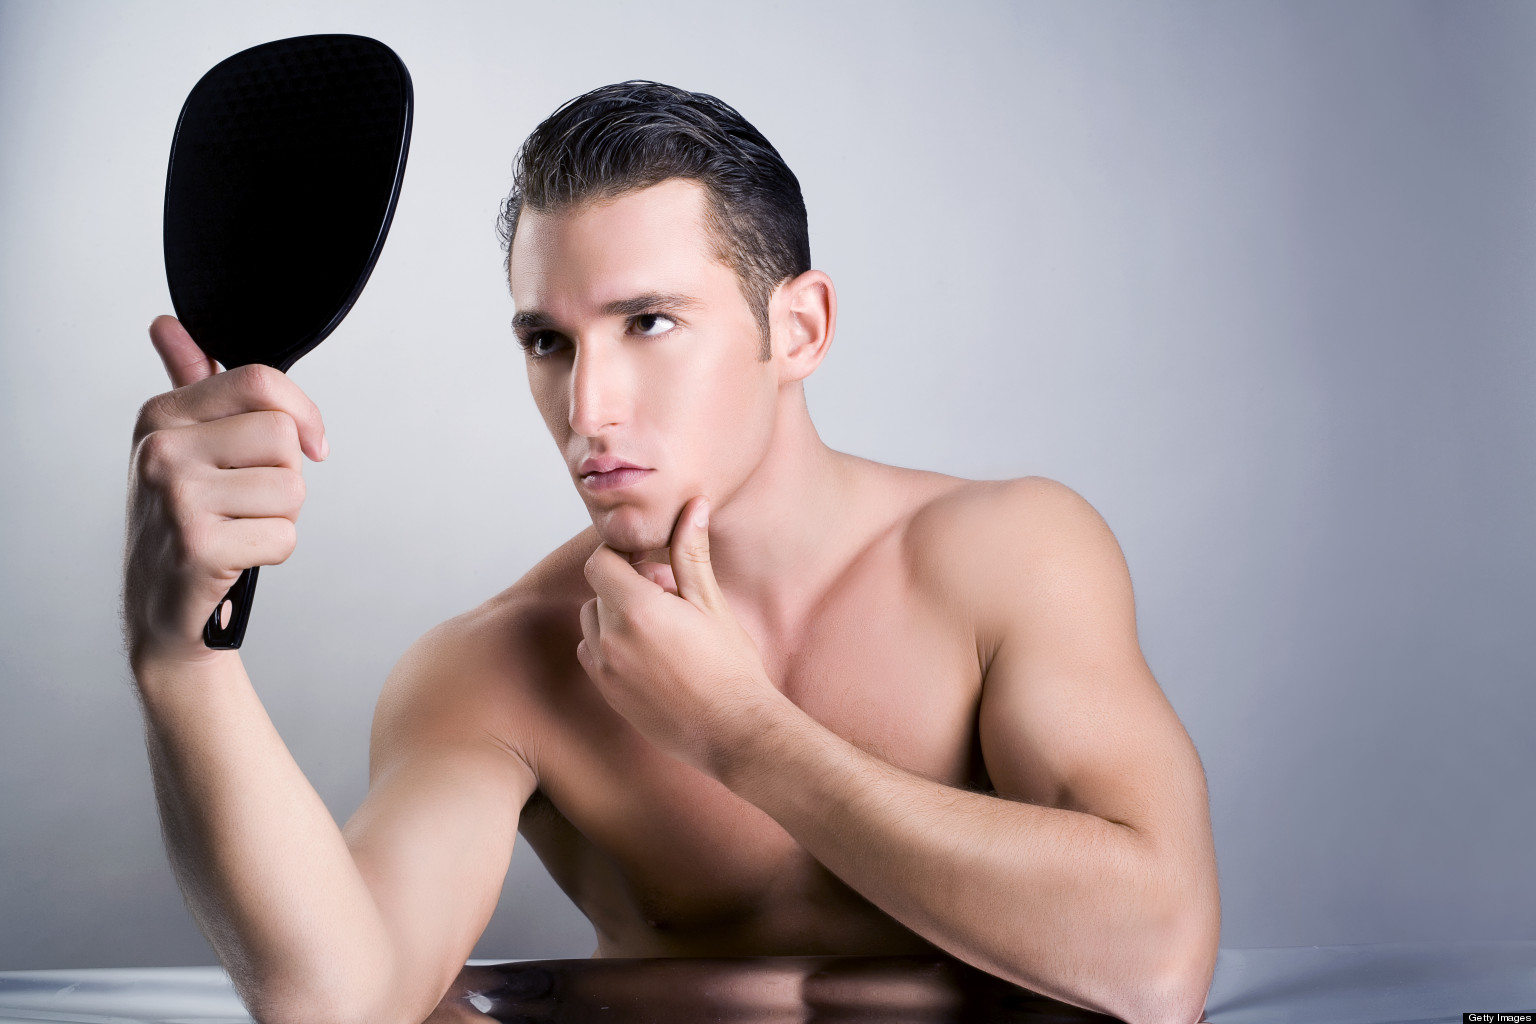 hillsville gay personals Discover gay dating near you and in virginia find a local connection today.